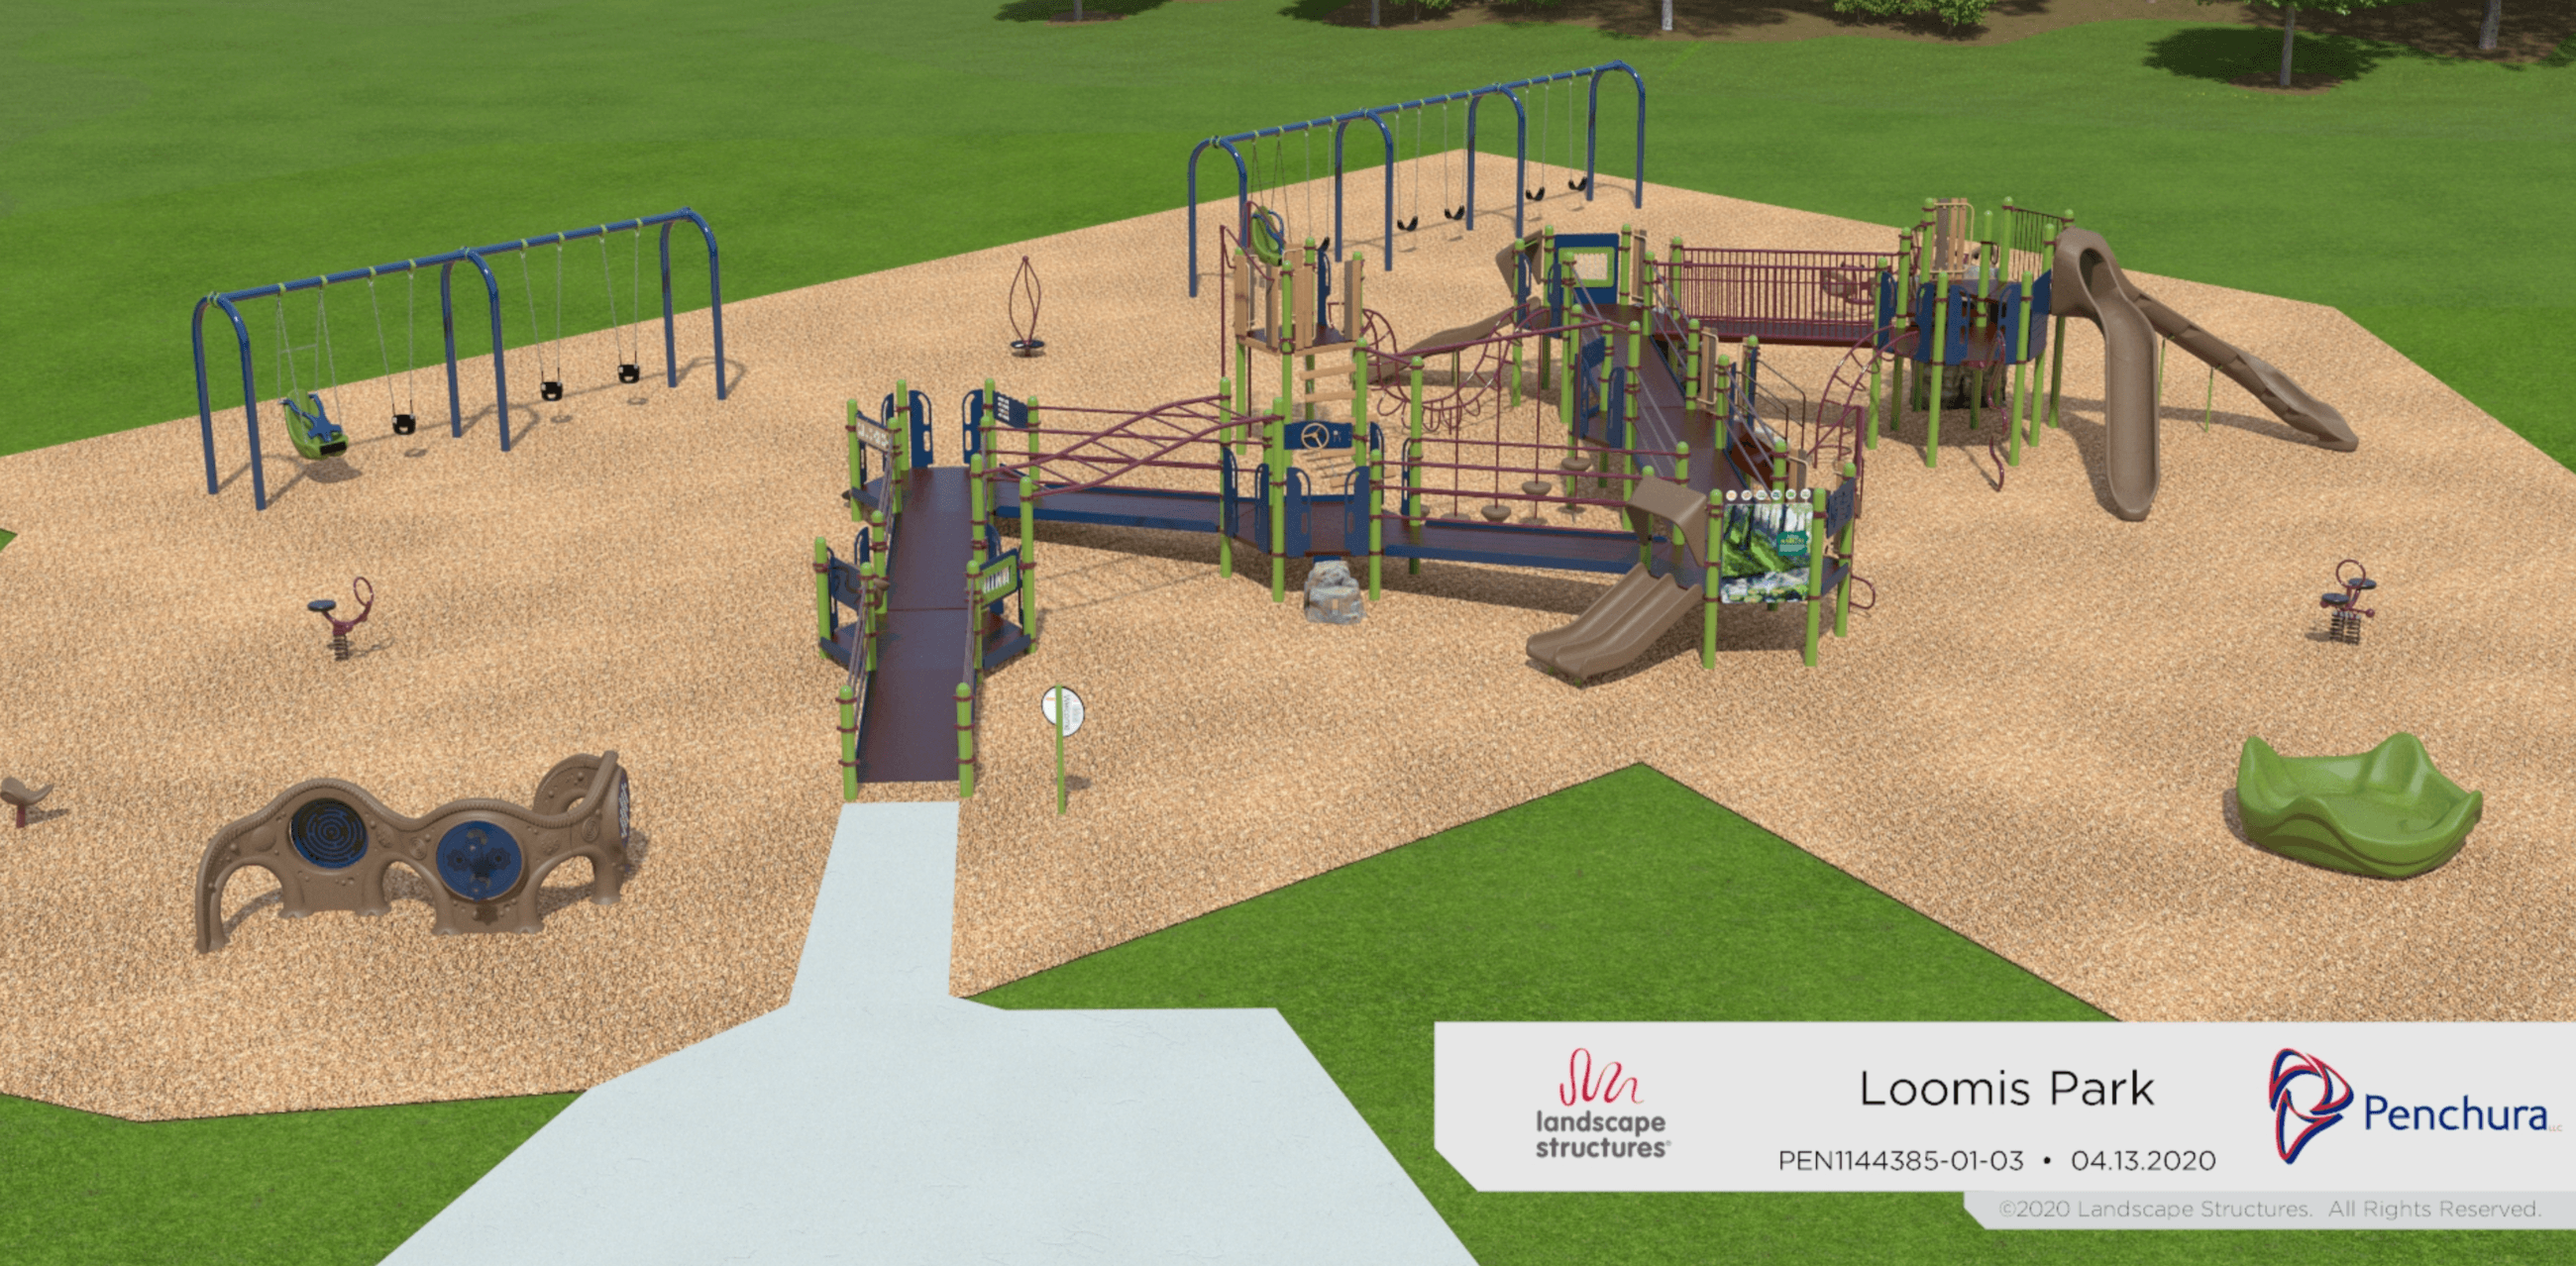 Proposed new playground at Loomis Park